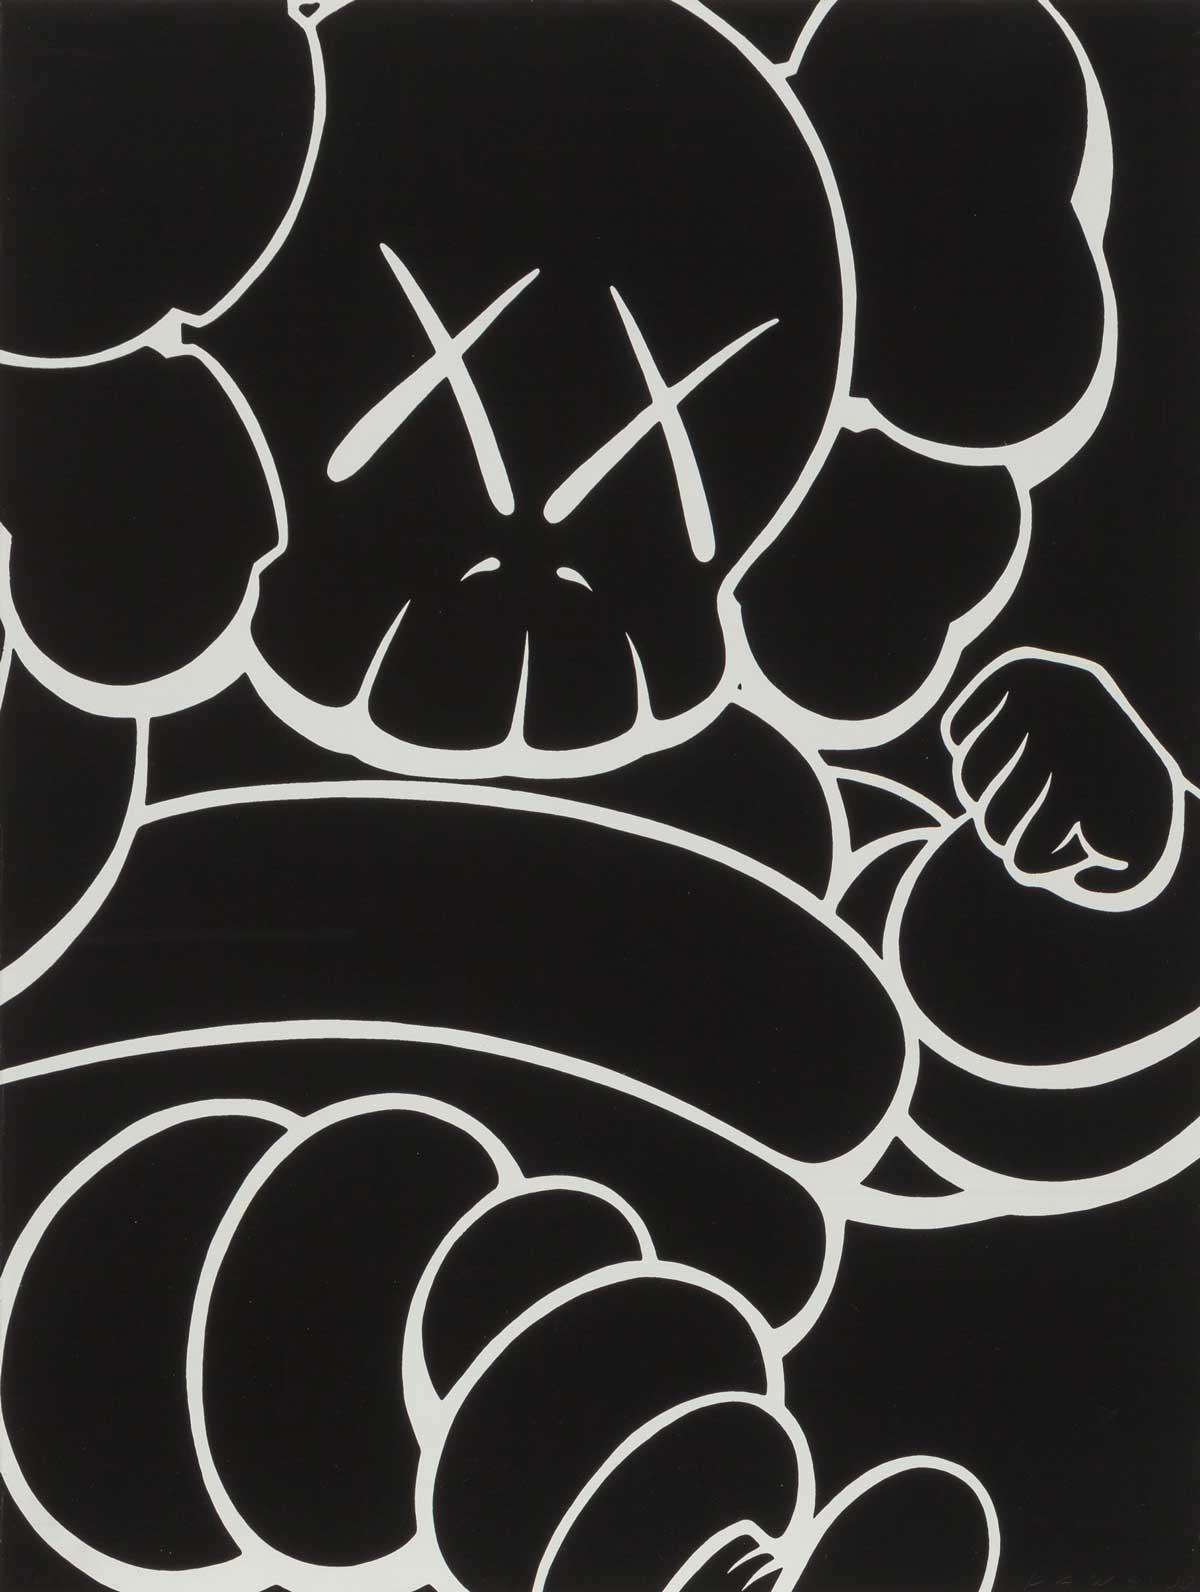 KAWS Artworks Hit Five-Figure Prices in Heritage's Urban Art Auction